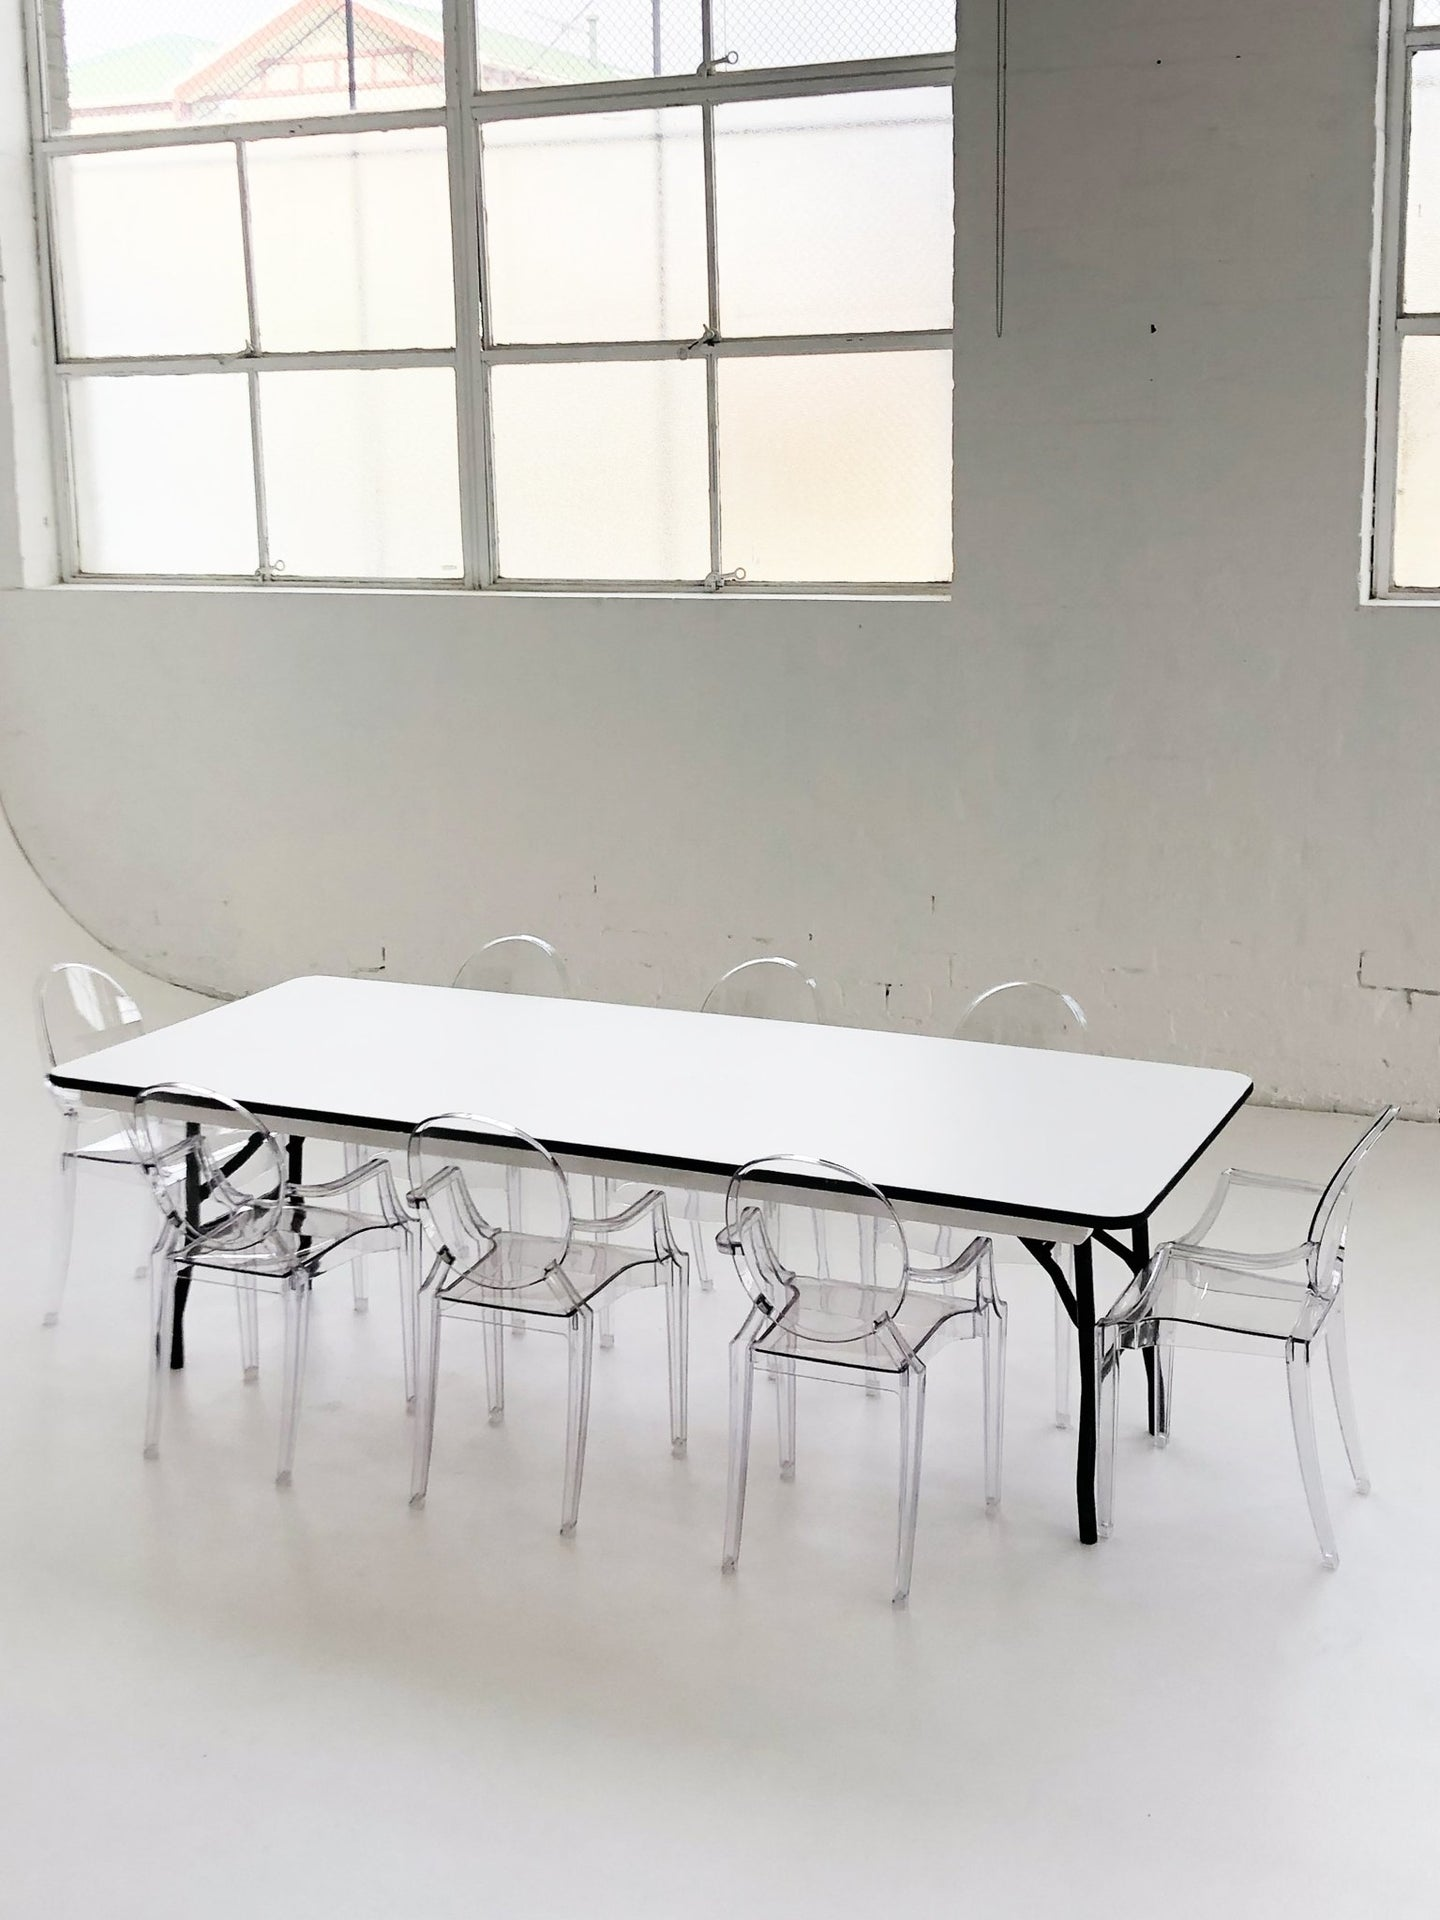 8 Ghost Chairs & 1 Rectangle Table - The Setup